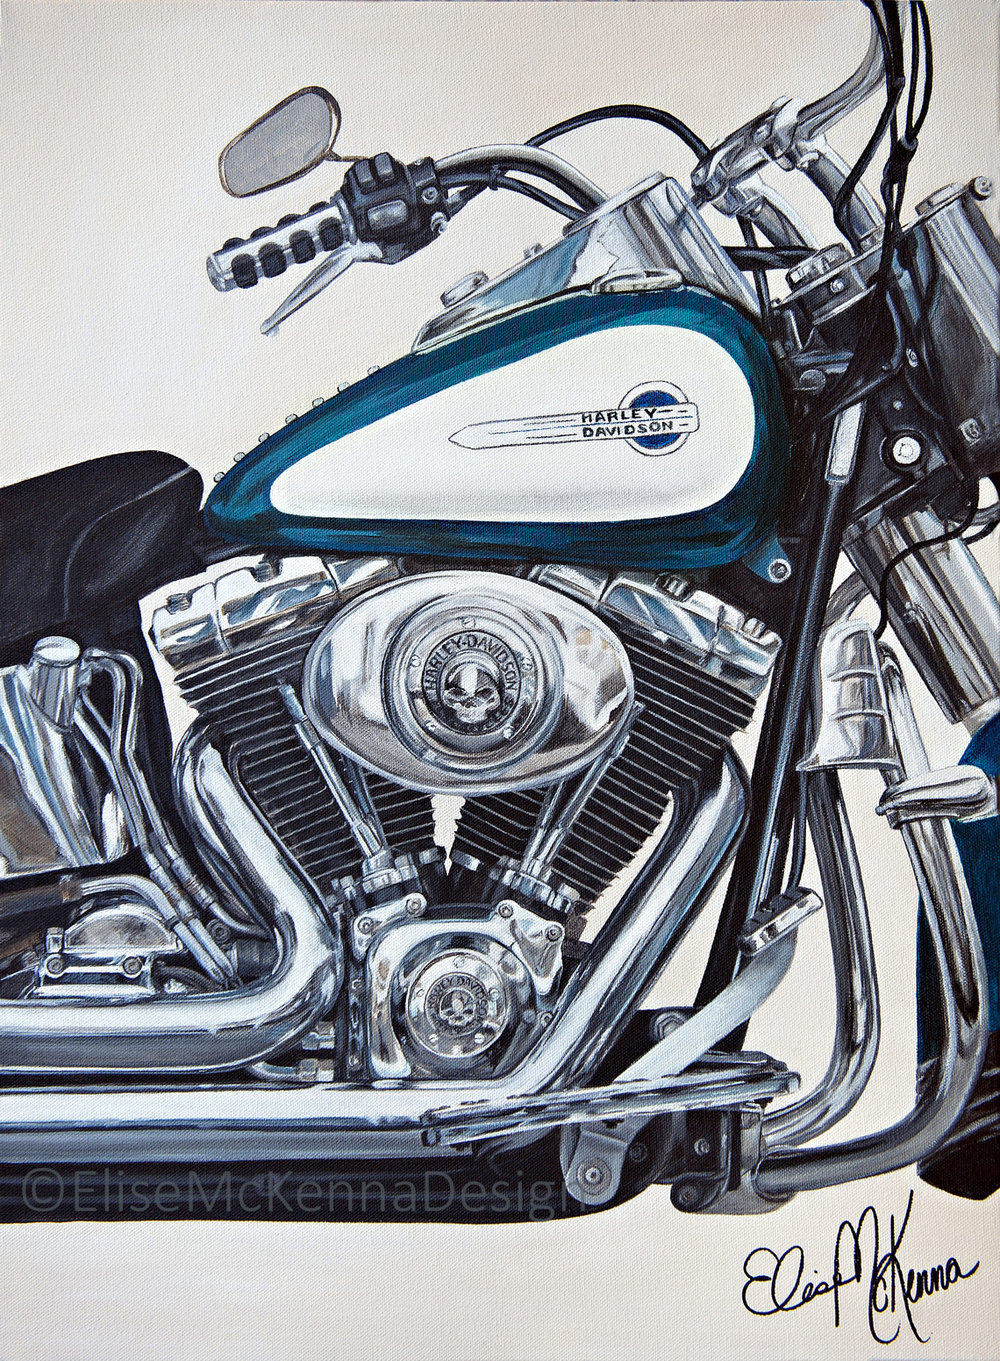 """Aqua"" - a close-up of a Harley-Davidson motorcycle engine   original: acrylic on canvas; 18 x 24 x .5"" ($1800) ; prints available for purchase"